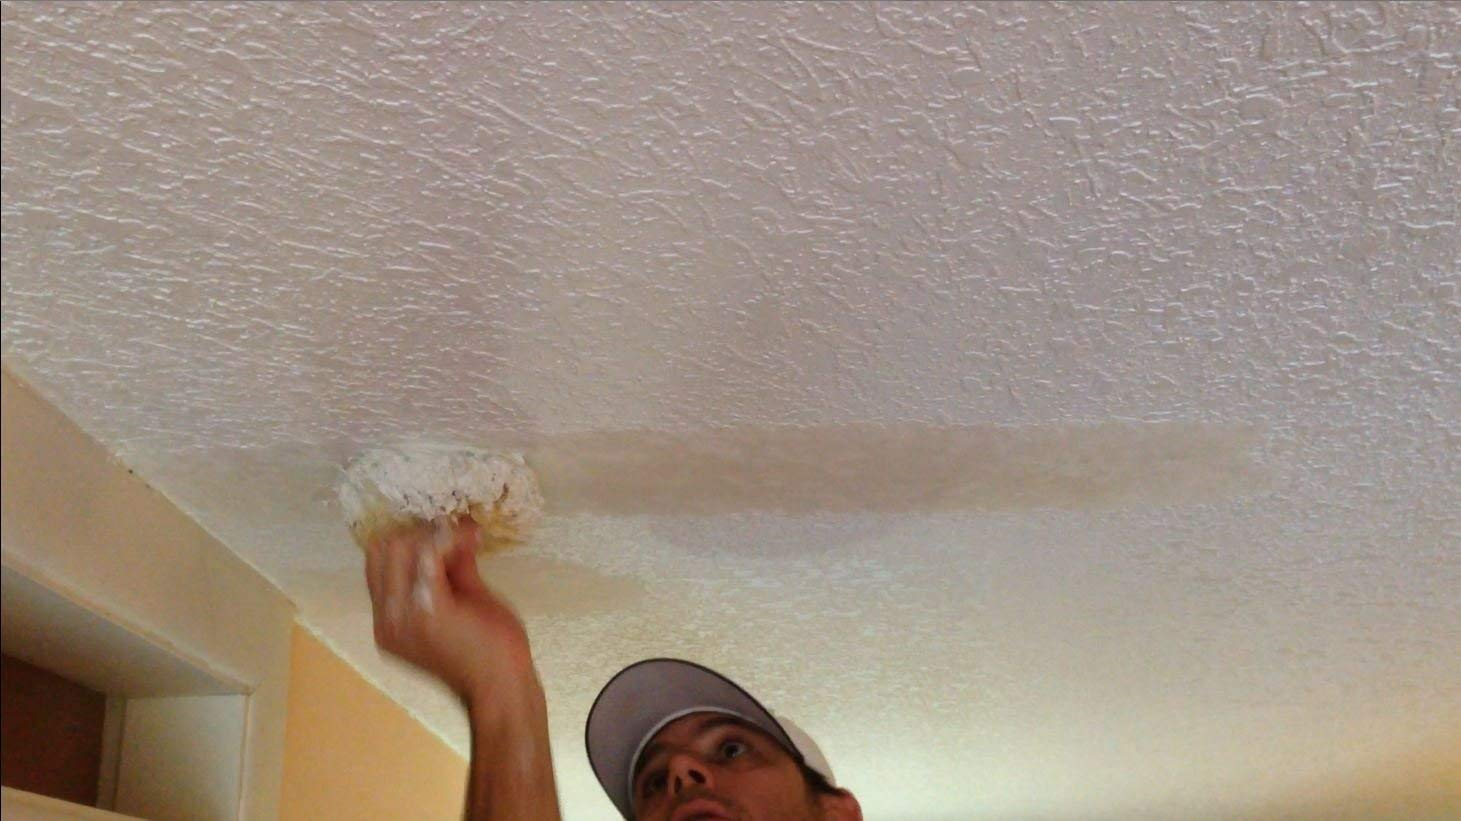 California Popcorn Removal -popcorn removal services, residential & commercial popcorn ceiling removal-16-We offer professional popcorn removal services, residential & commercial popcorn ceiling removal, Knockdown Texture, Orange Peel Ceilings, Smooth Ceiling Finish, and Drywall Repair